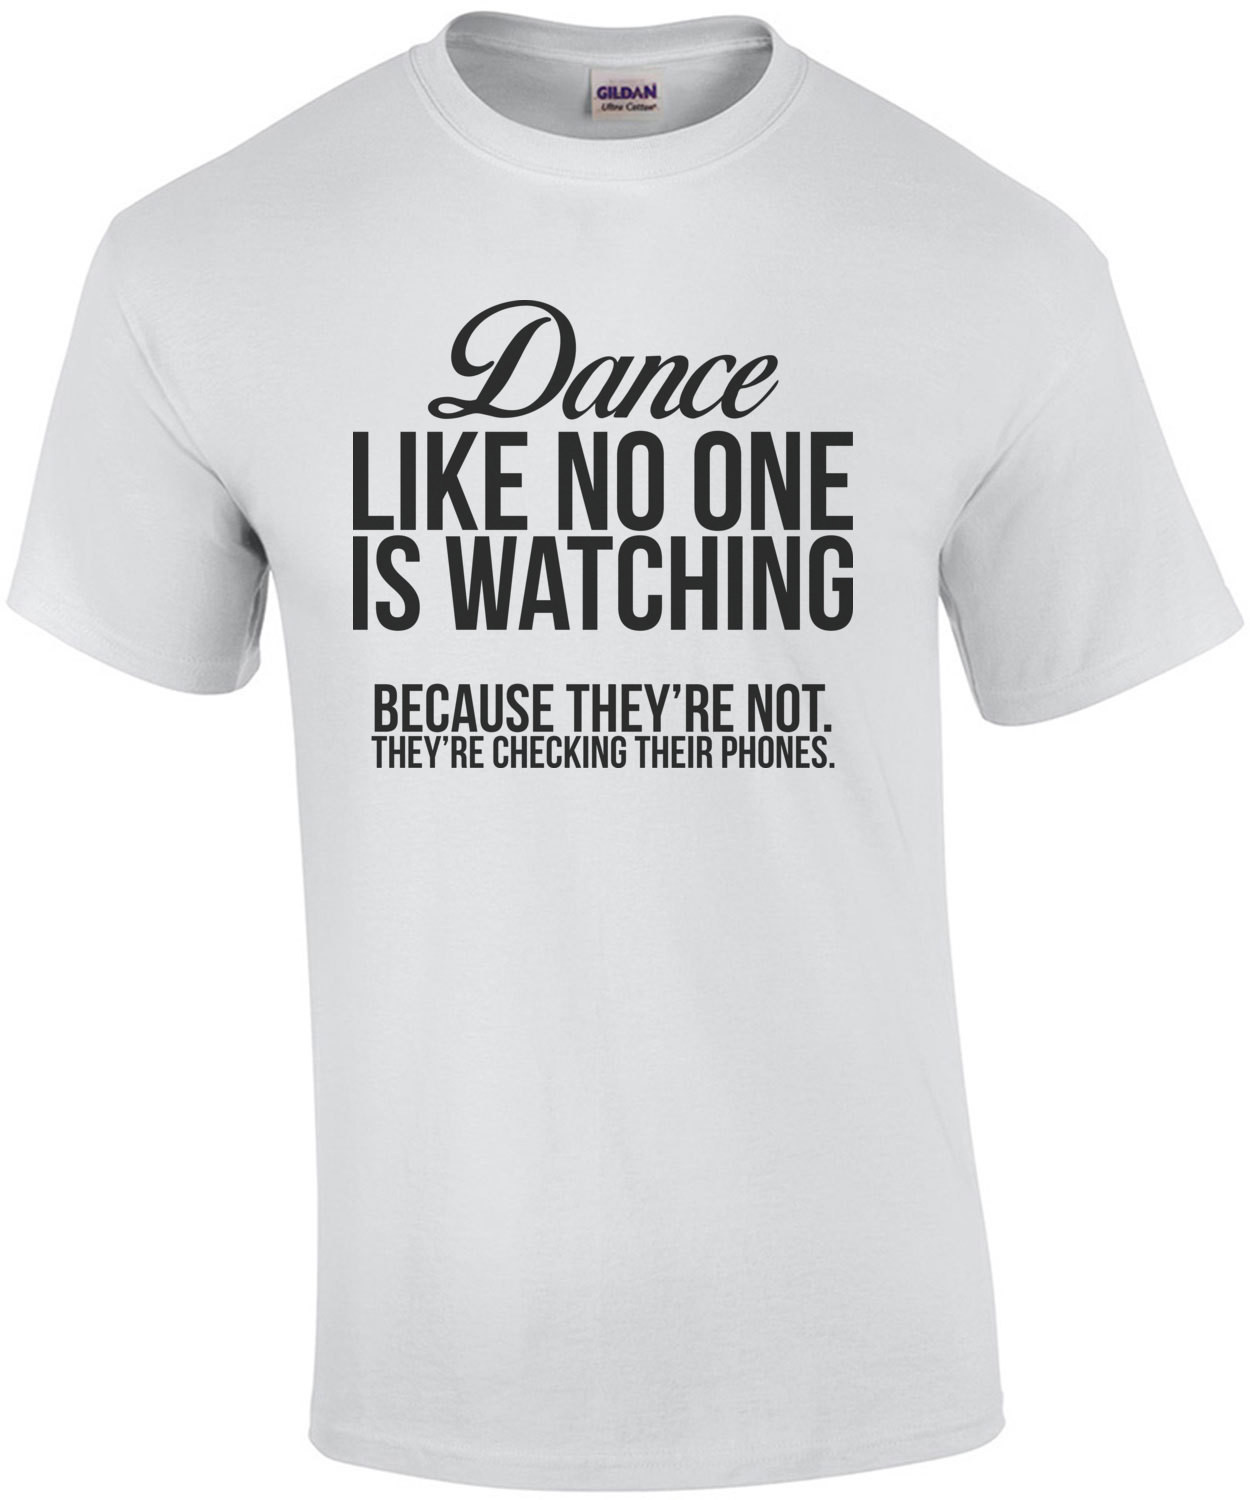 Dance Like No One Is Watching Because They're Not They're Checking Their Phone.